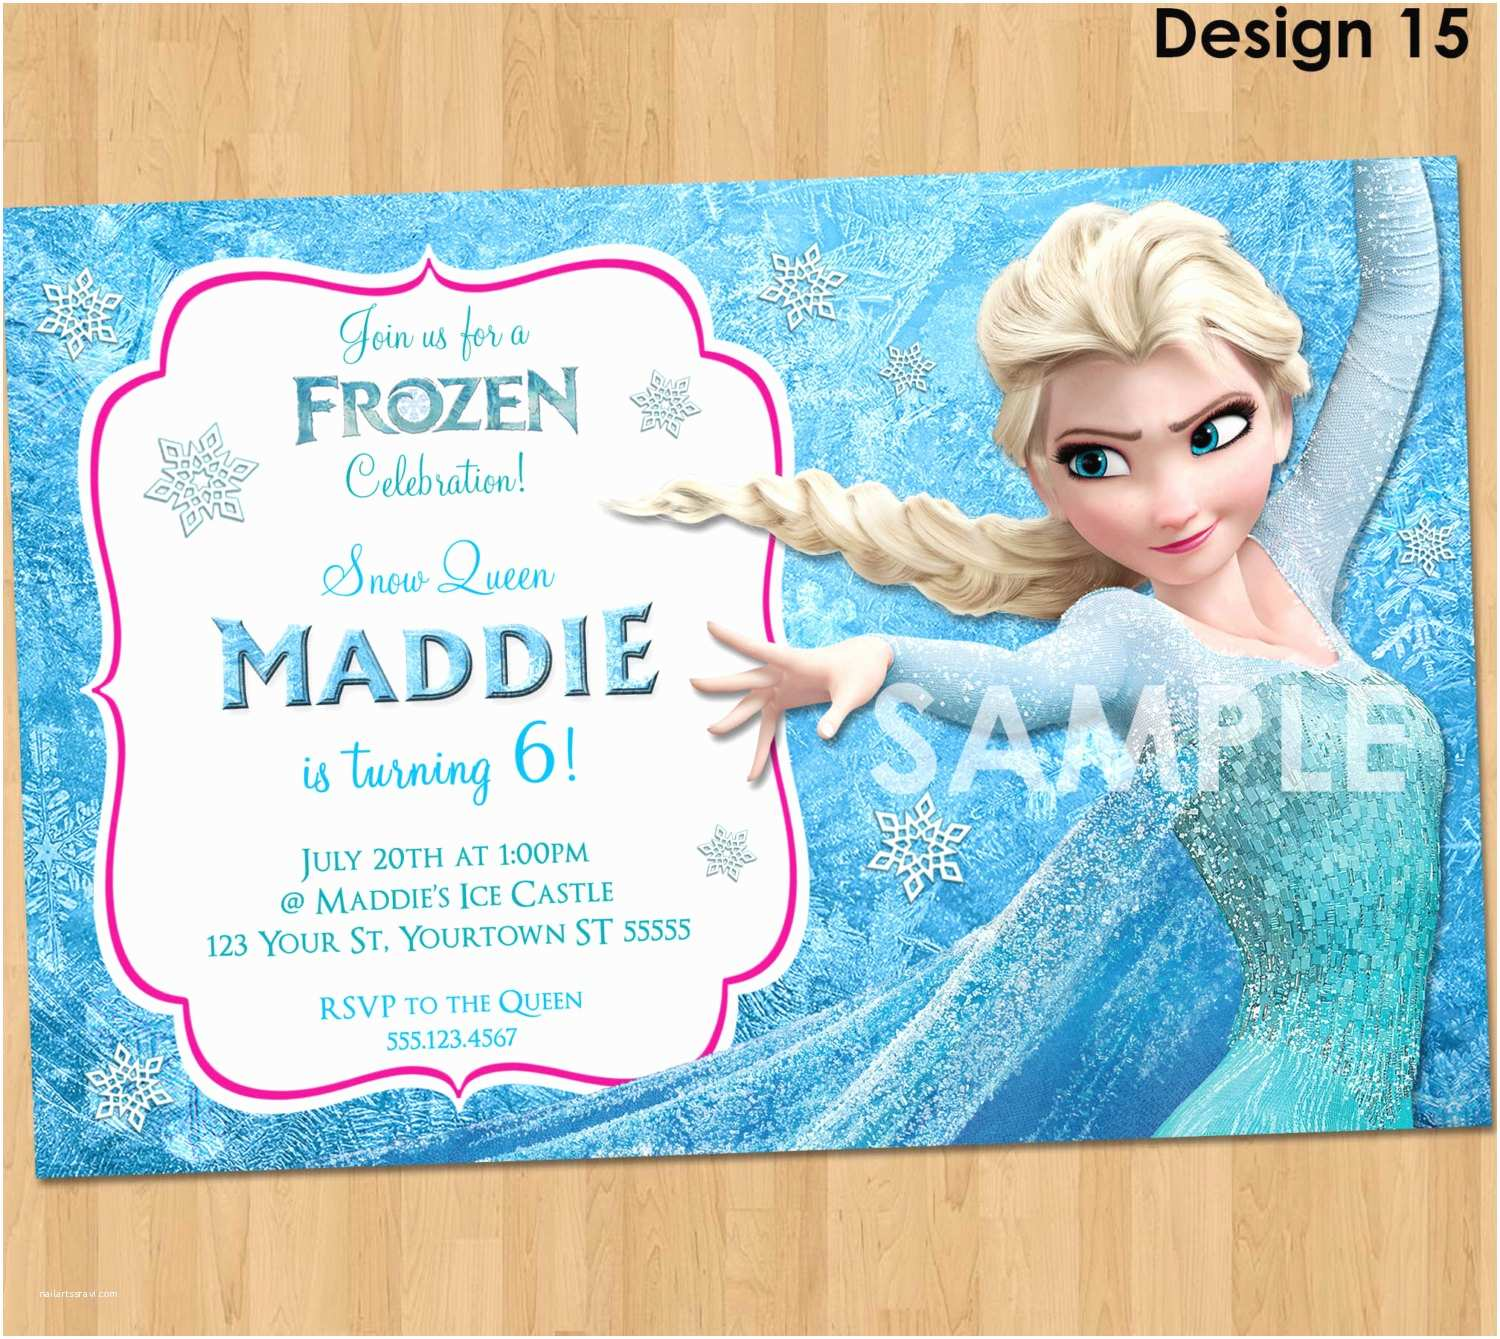 image regarding Frozen Invitations Printable identify Elsa Birthday Invites Frozen Birthday Invitation Elsa